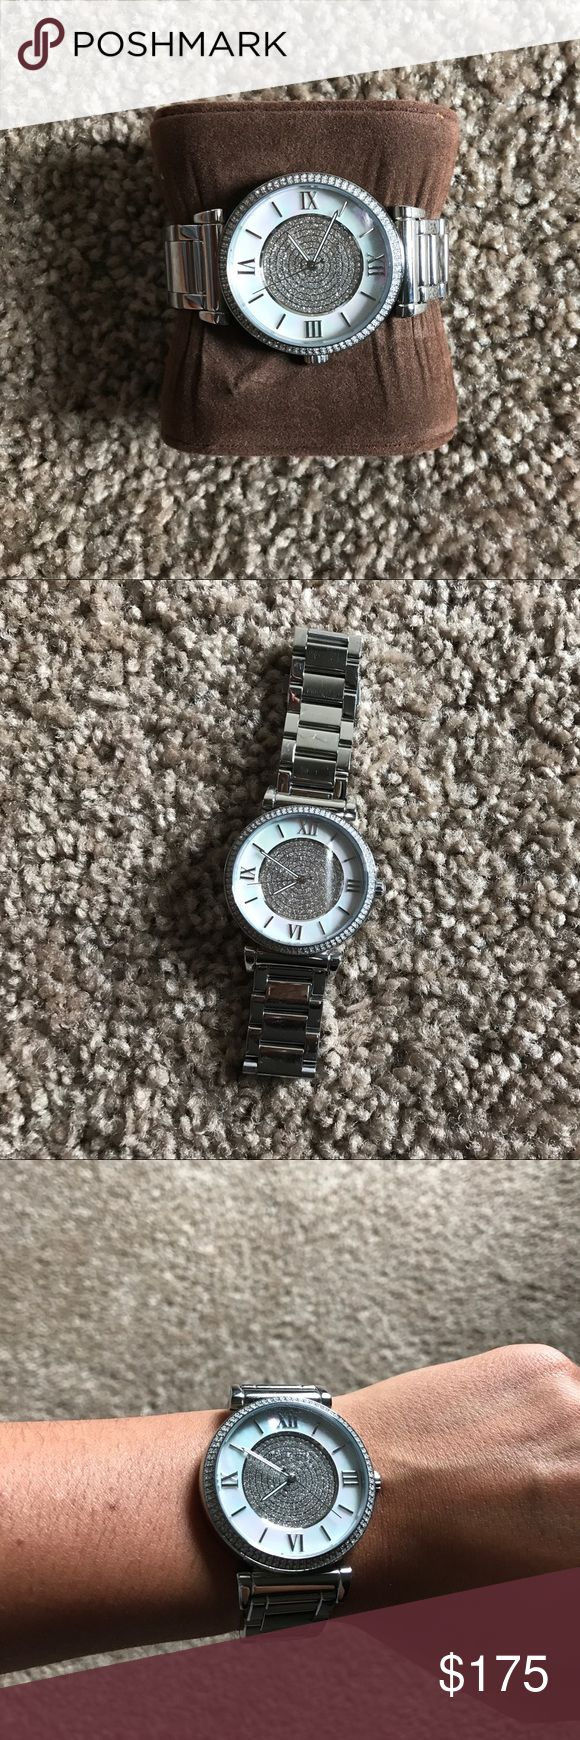 Michael Kors Silver Watch Selling a Michael Kors watch, only worn twice! The item is in pristine condition and is a beautiful accessory. Michael Kors Accessories Watches